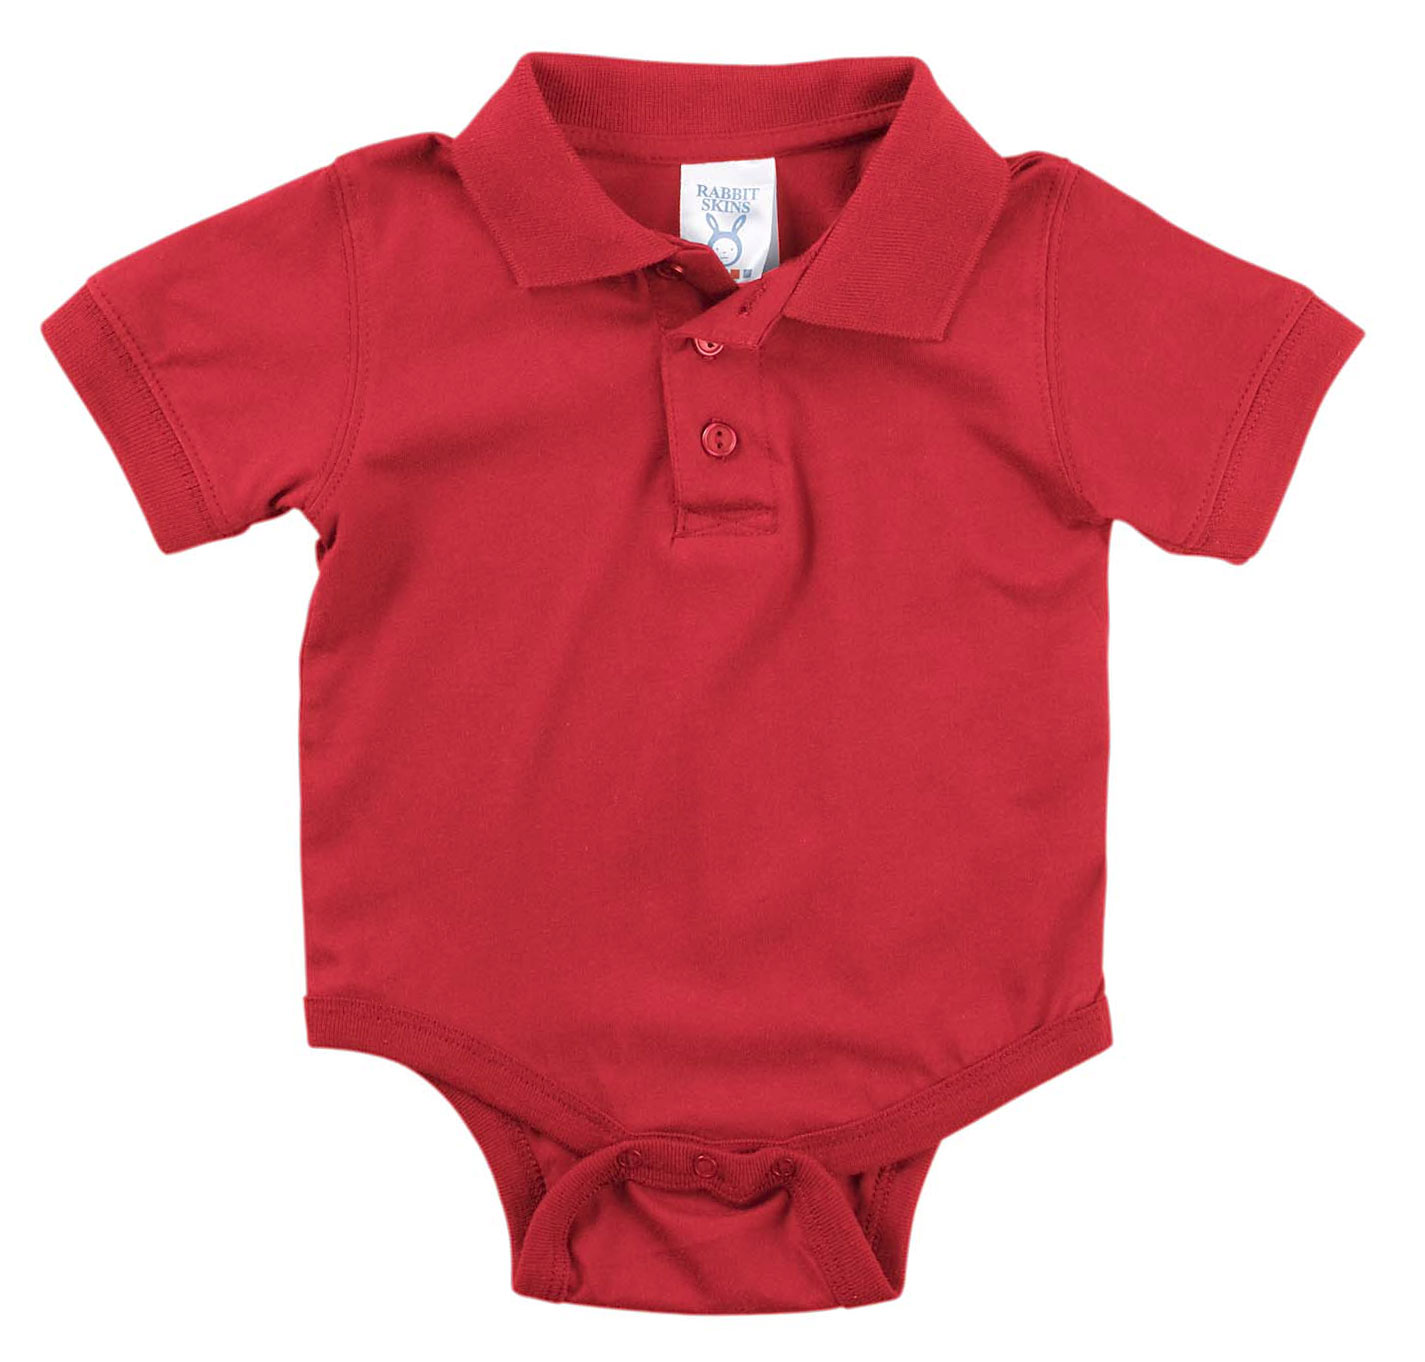 Polo Onesies. invalid category id. Polo Onesies. Showing 40 of 58 results that match your query. Search Product Result. Product - Def Leppard - Lil Red Pick Baby One Piece. Clearance. Product - CafePress - Great Grandpa Says I'm A Keeper! Baby Onesie - Baby Light Bodysuit. Product Image.